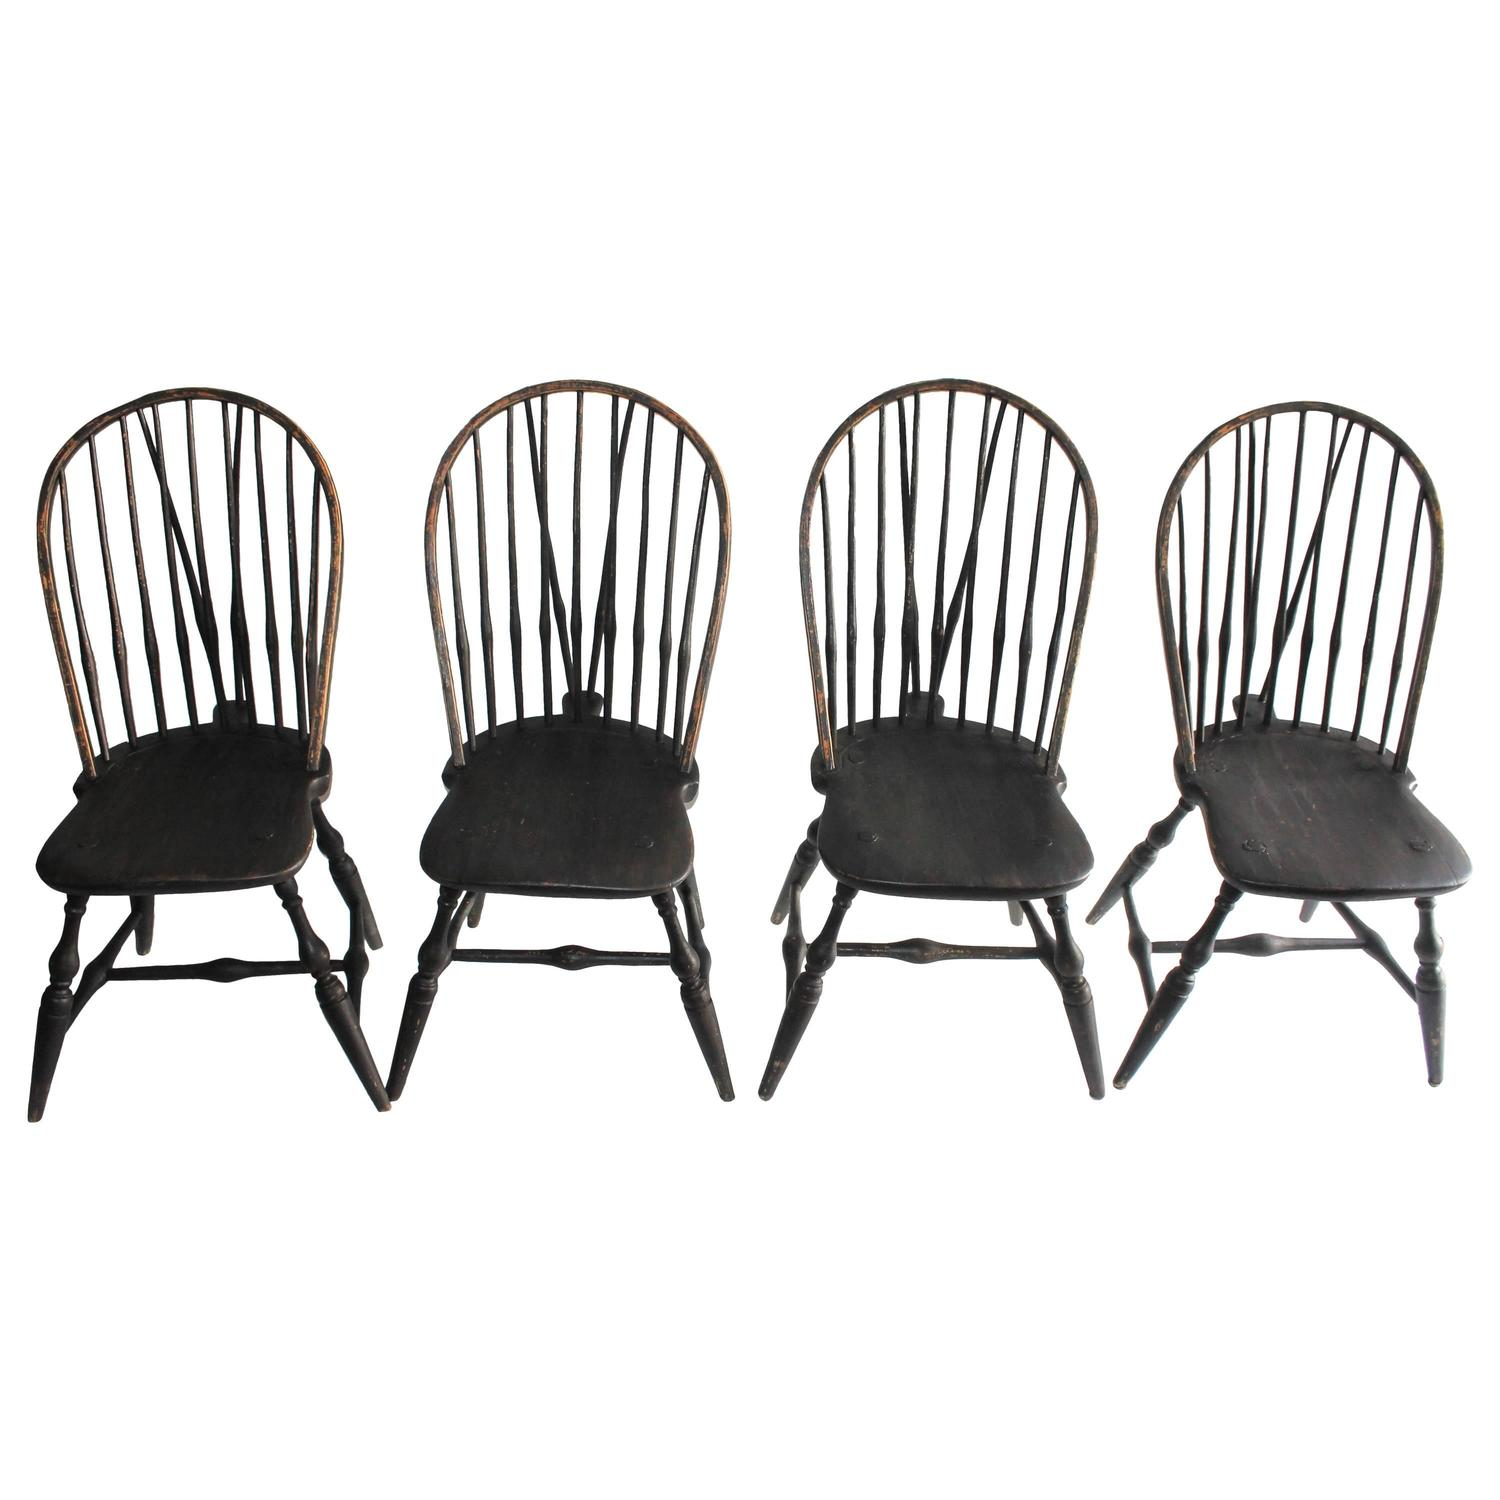 Set of Four 18th Century Black Painted Brace Back Windsor Chairs